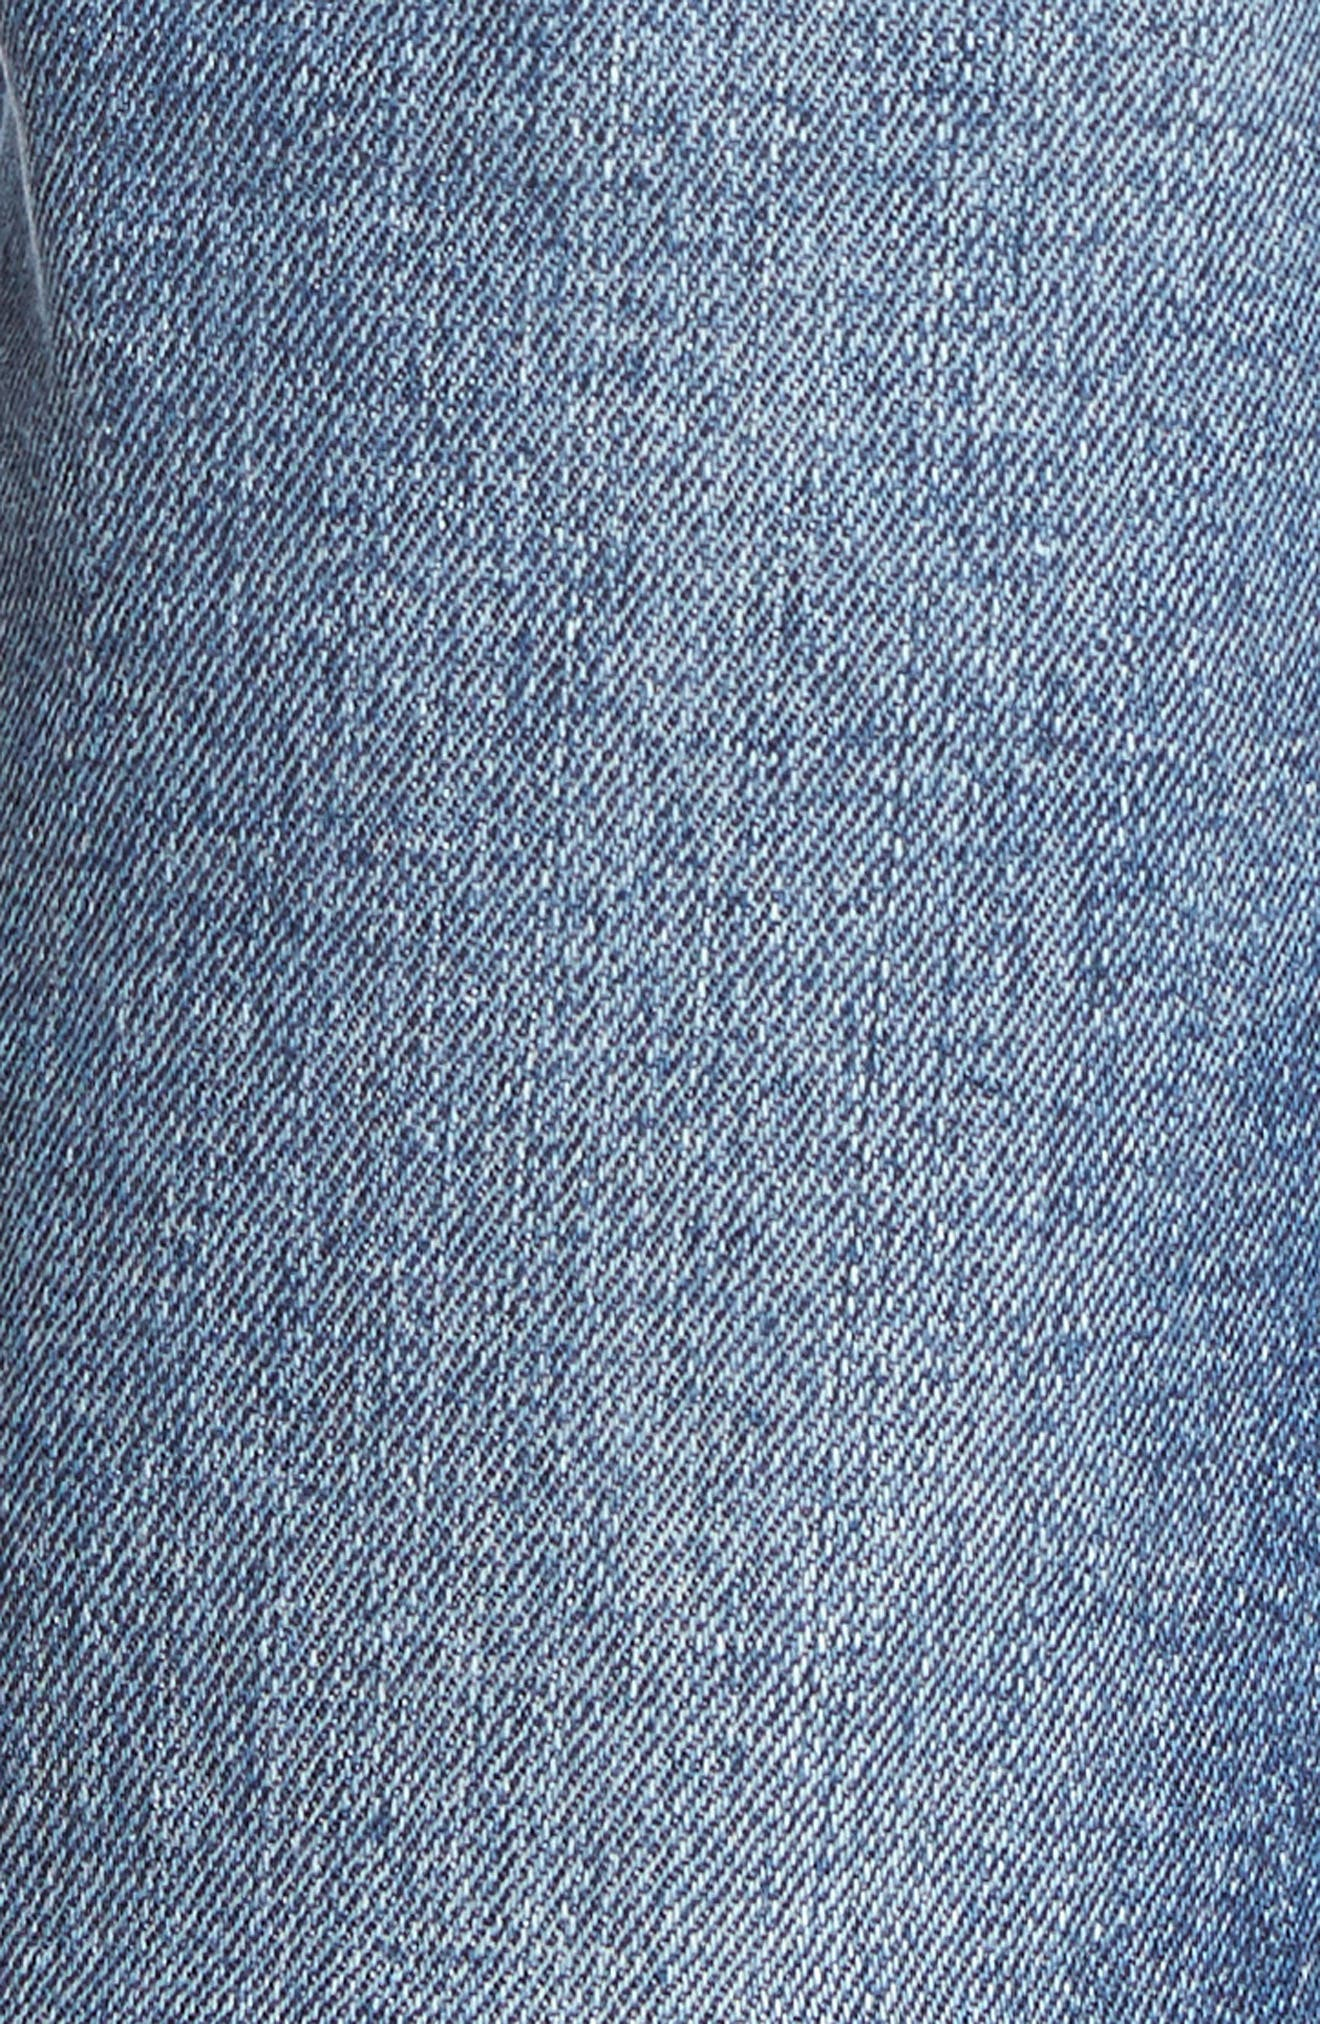 Thommer Skinny Fit Jeans,                             Alternate thumbnail 5, color,                             400